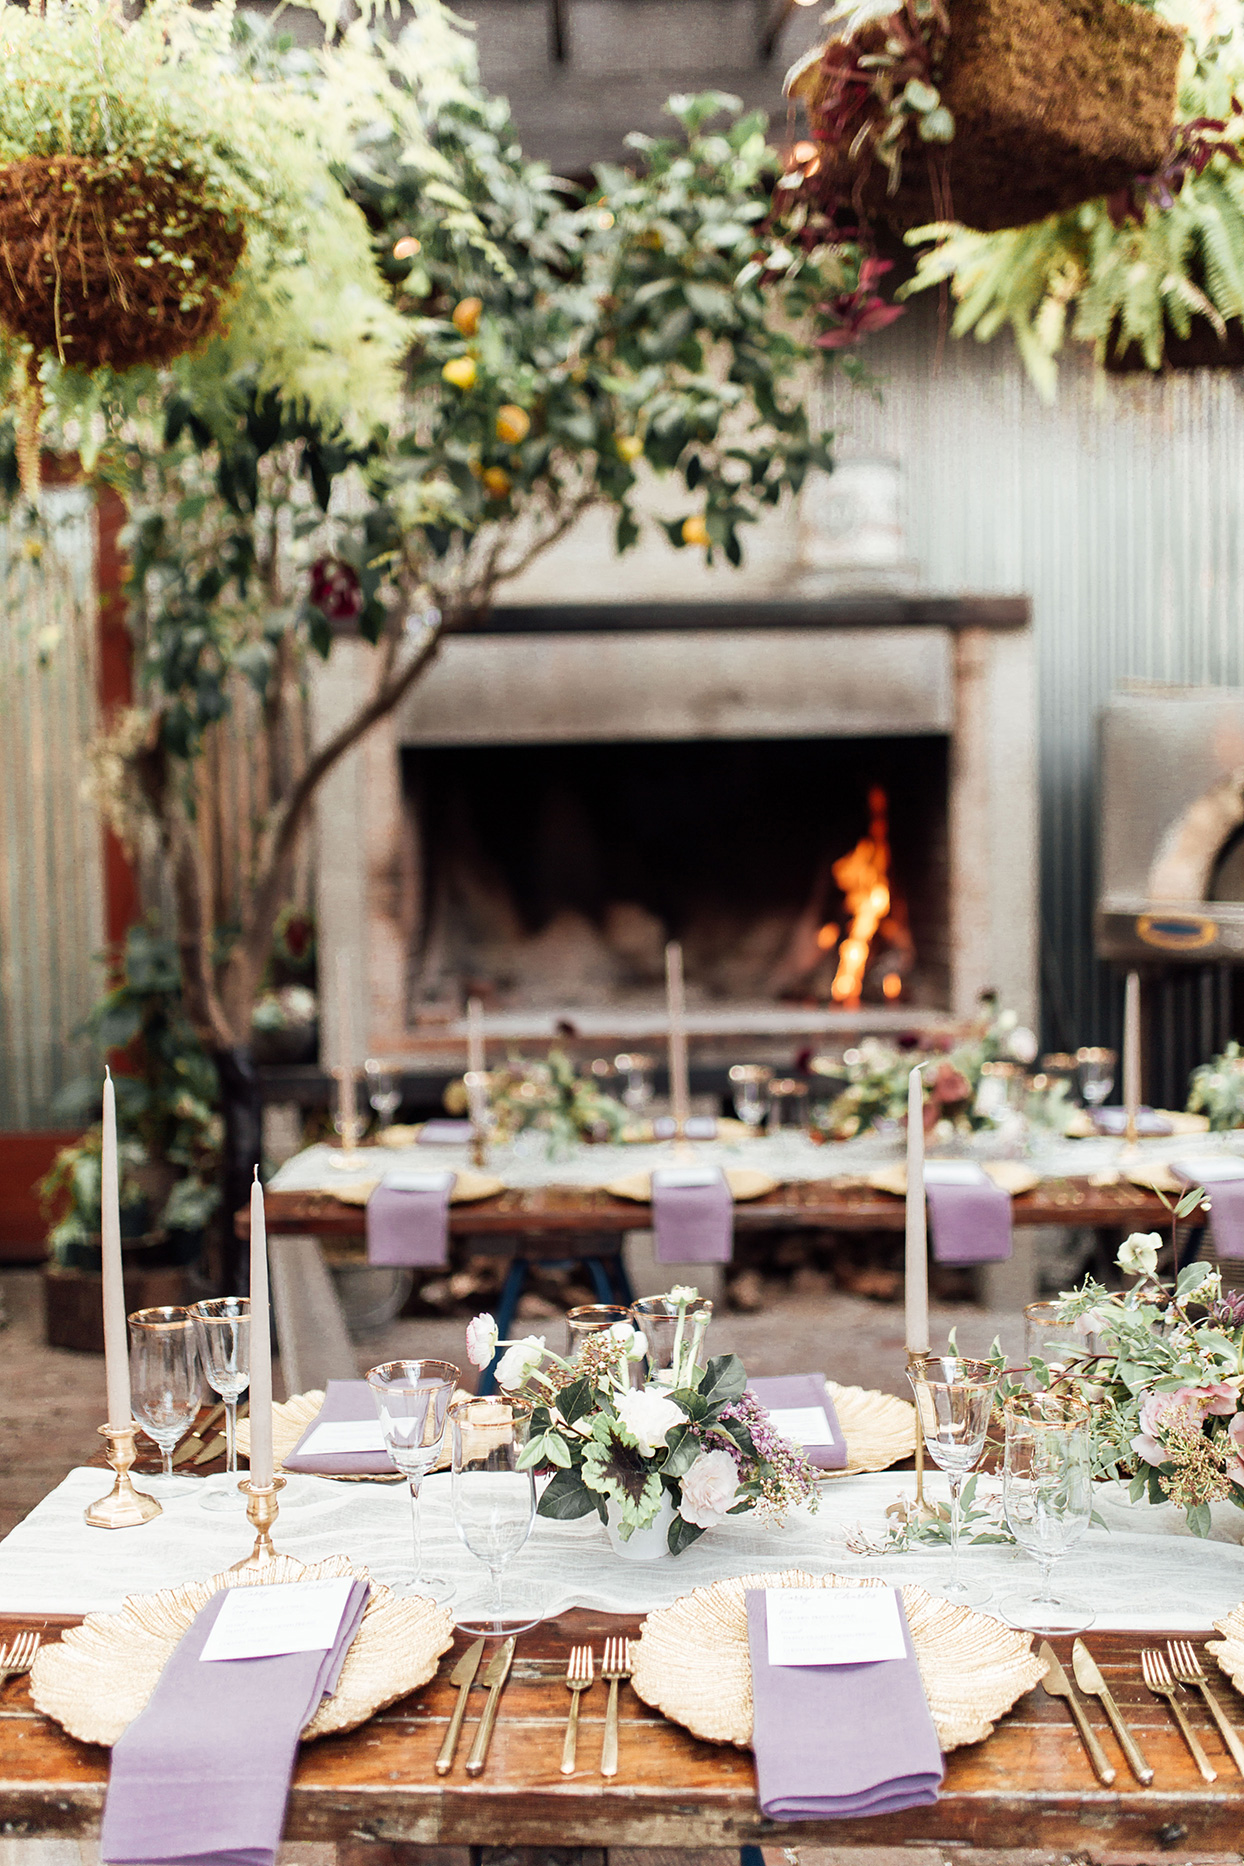 rustic wedding reception place settings in plum